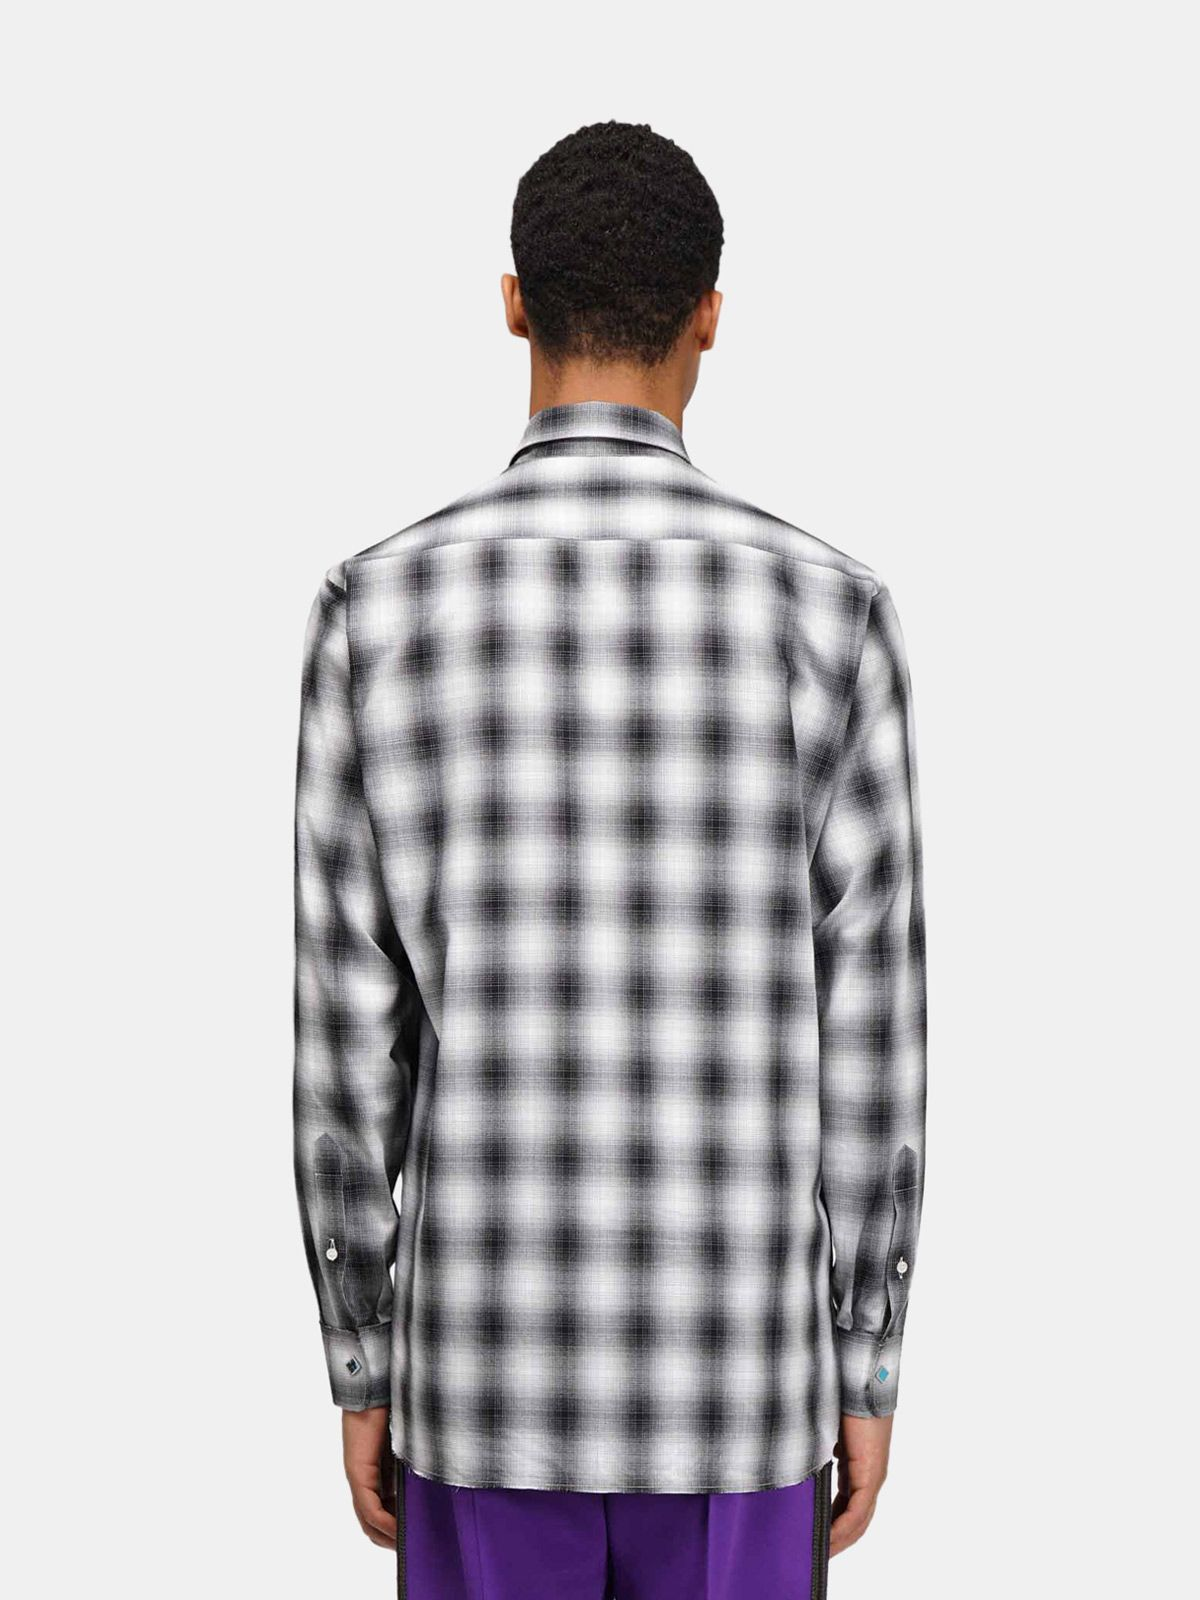 Golden Goose - Nathan checked shirt with studs and rhinestones on the collar in